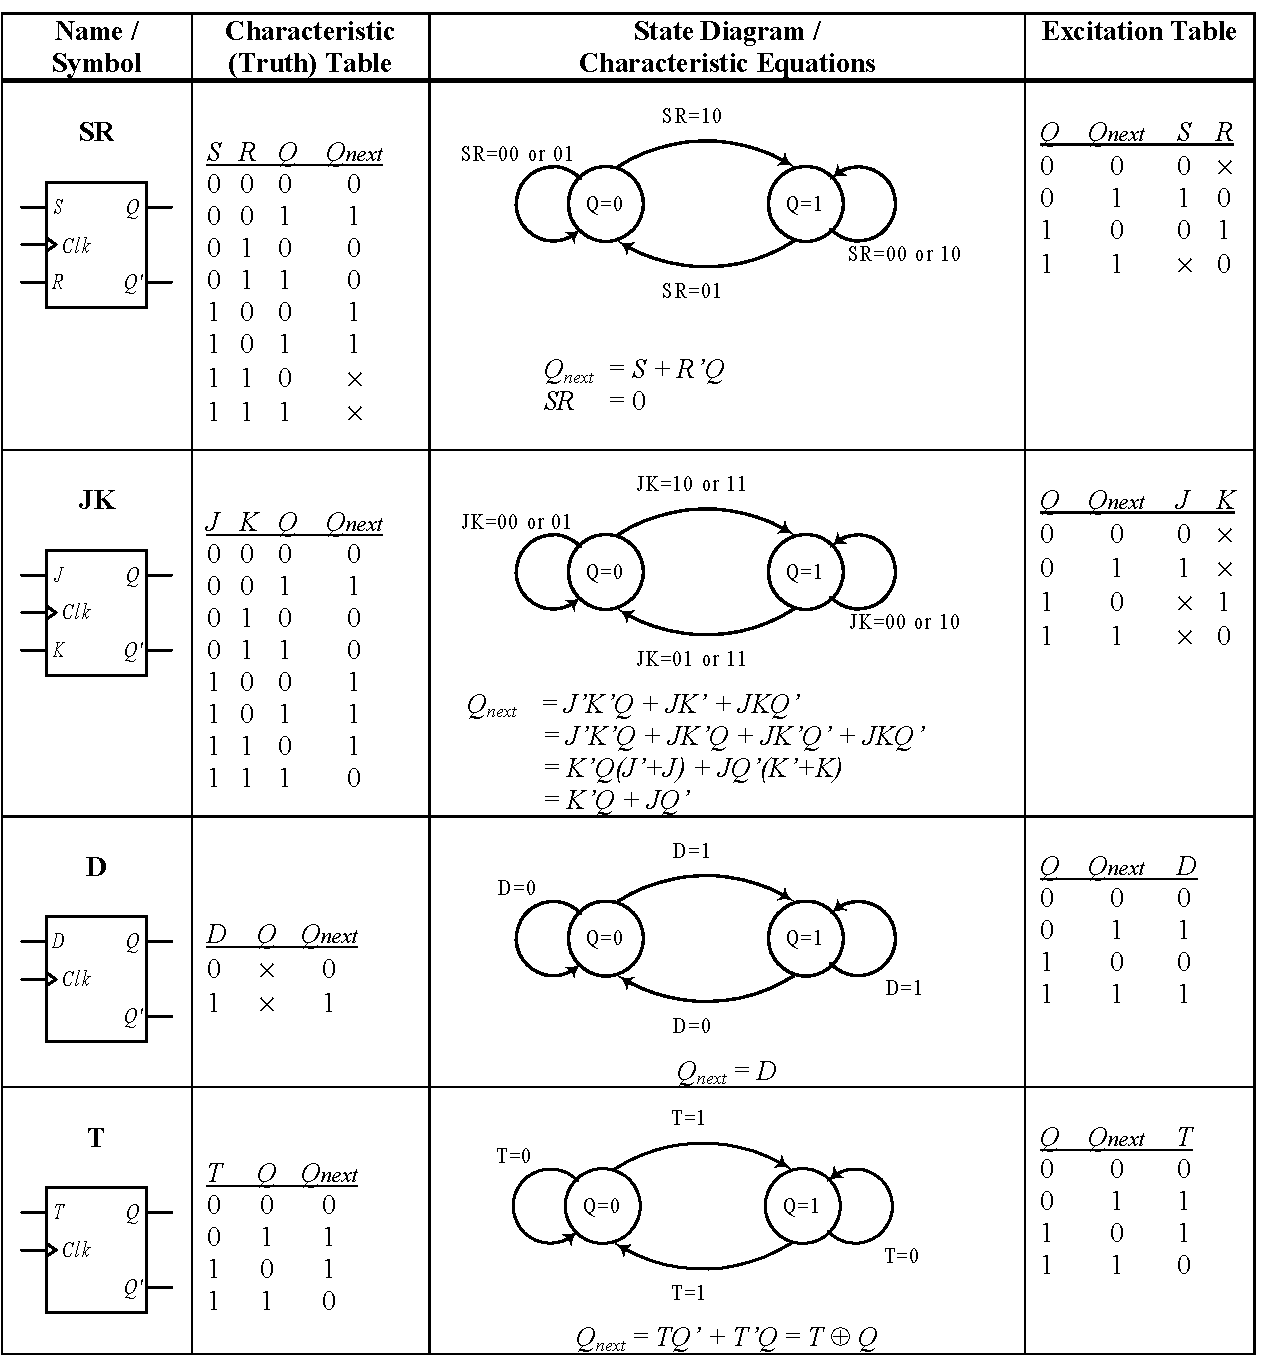 D Latch Logic Diagram Gate 2014 Materials Previous Papers Computer Books Aptitude The Flip Flops Can Be Described Fully And Uniquely By Its Symbol Characteristic Table Equation State Or Excitation